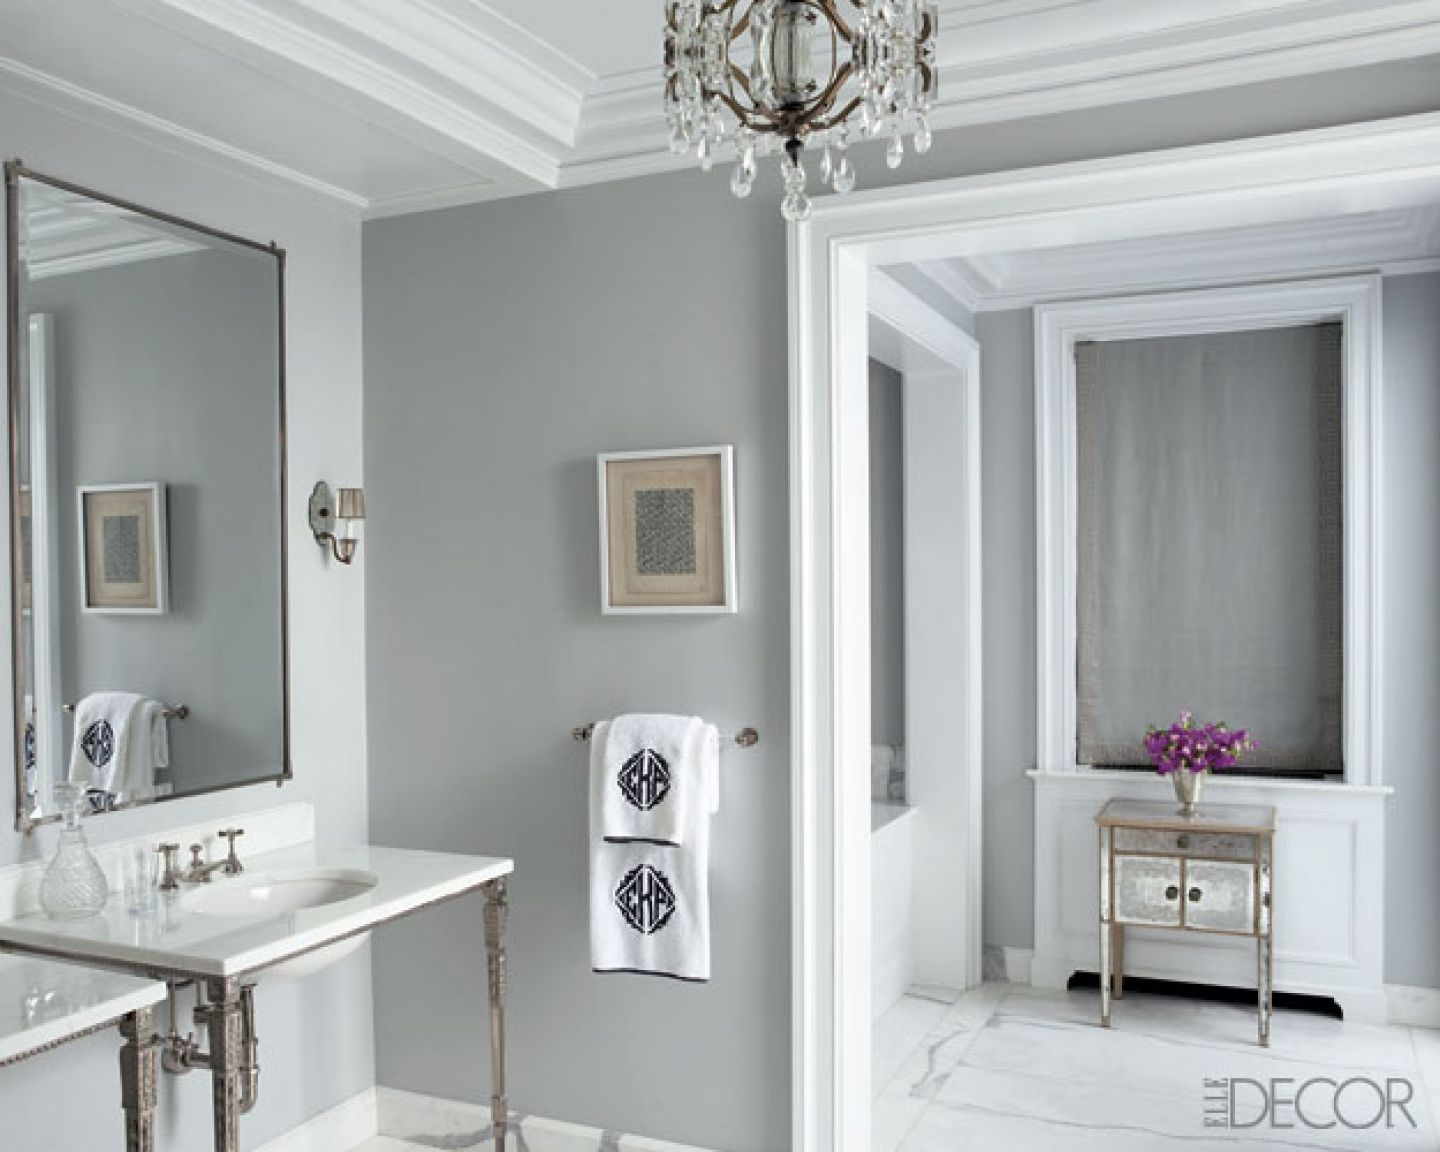 Gray colors for bathroom walls - Elegant Bathroom Paint Idea With Grey Painted Wall And White Borders Also Two Sink Consoles With